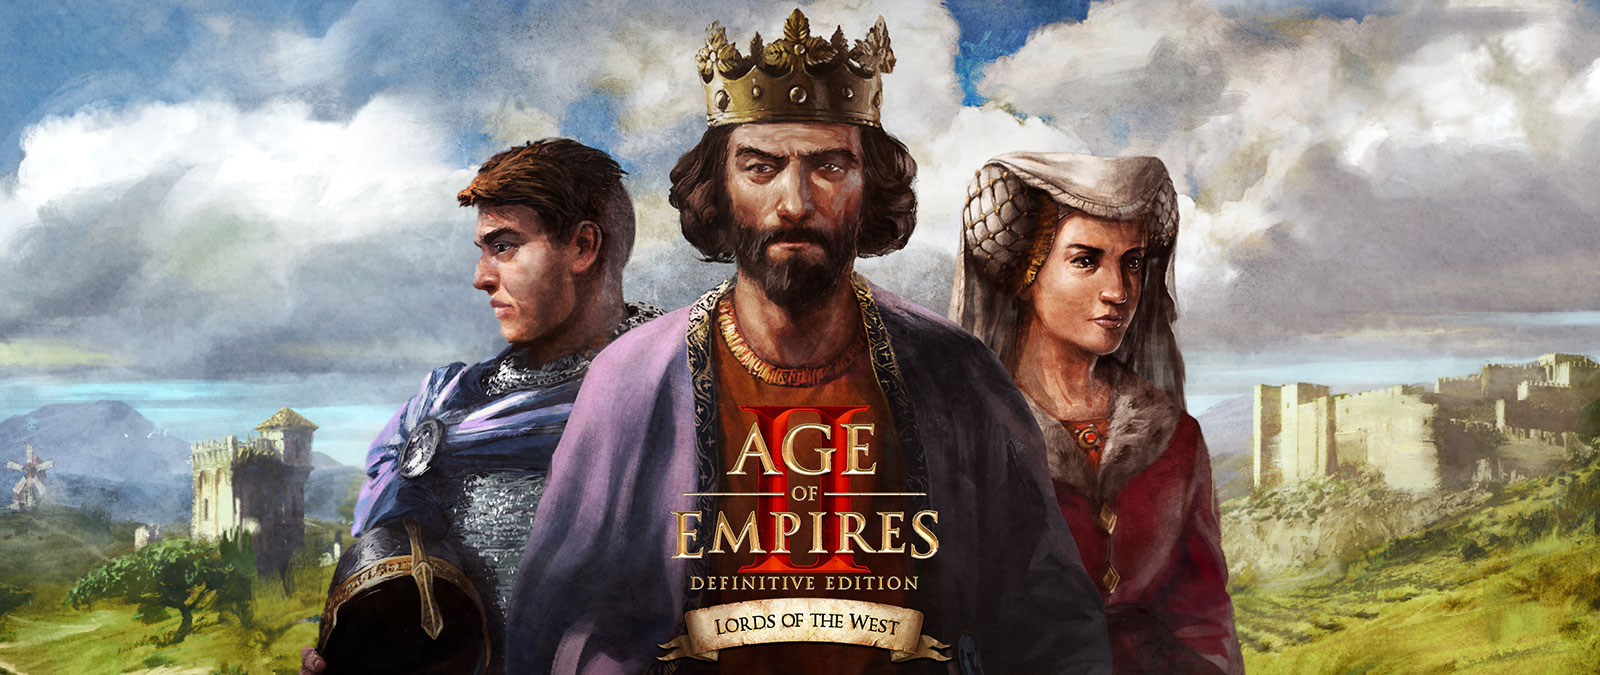 Age of Empires II: Definitive Edition. Lords of the West. Drie personages poseren.